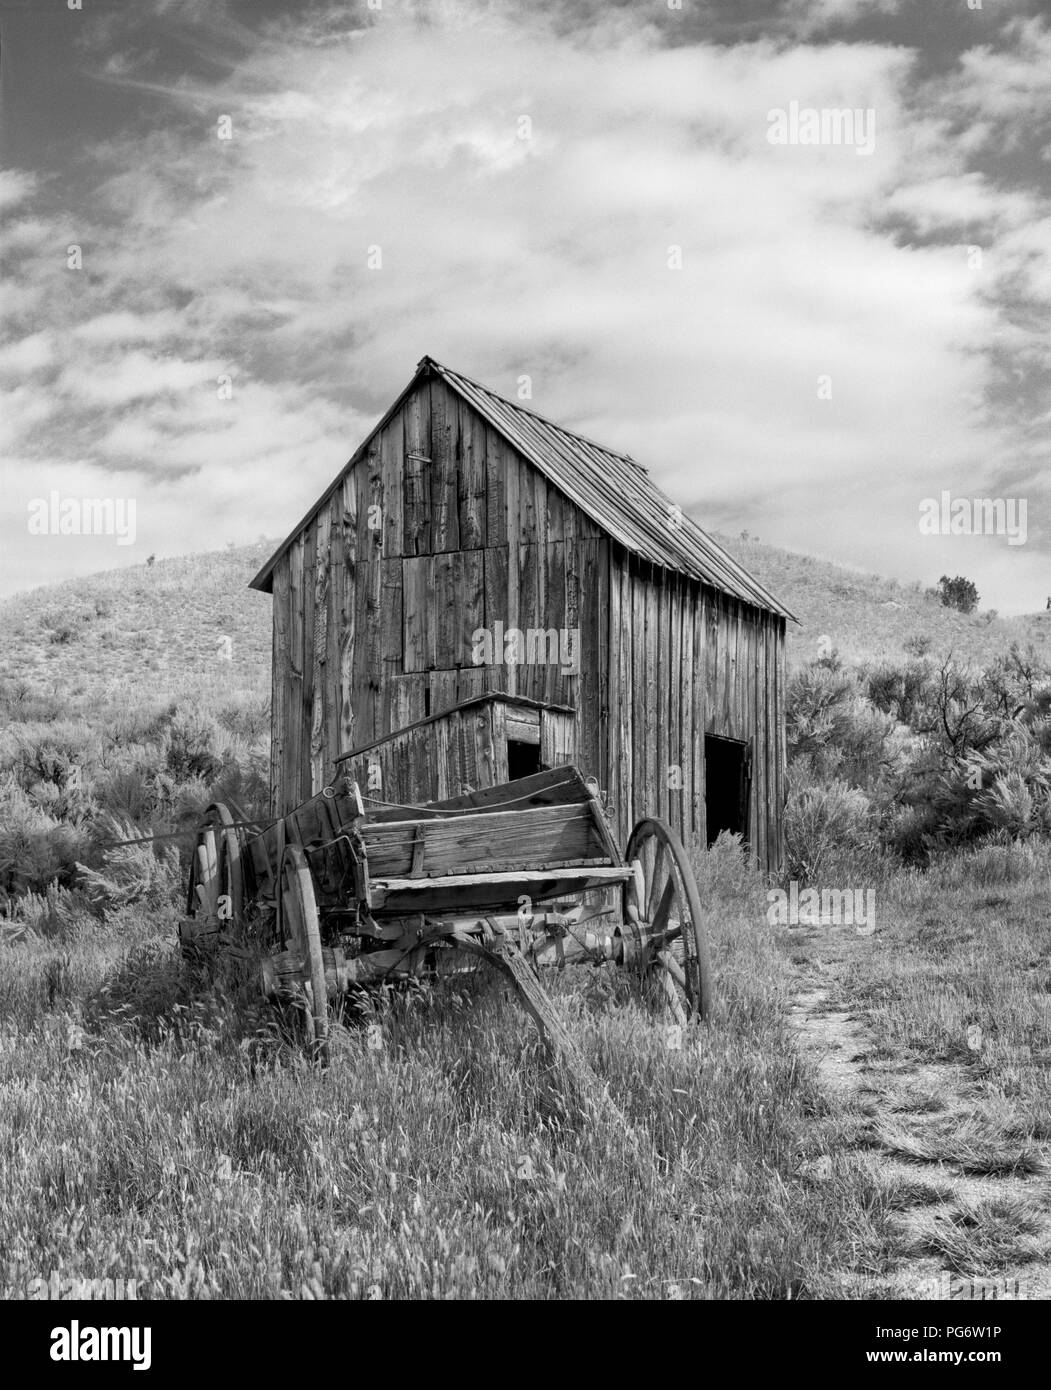 Wagon and barn in Bannack ghost town, Montana, United States - Stock Image